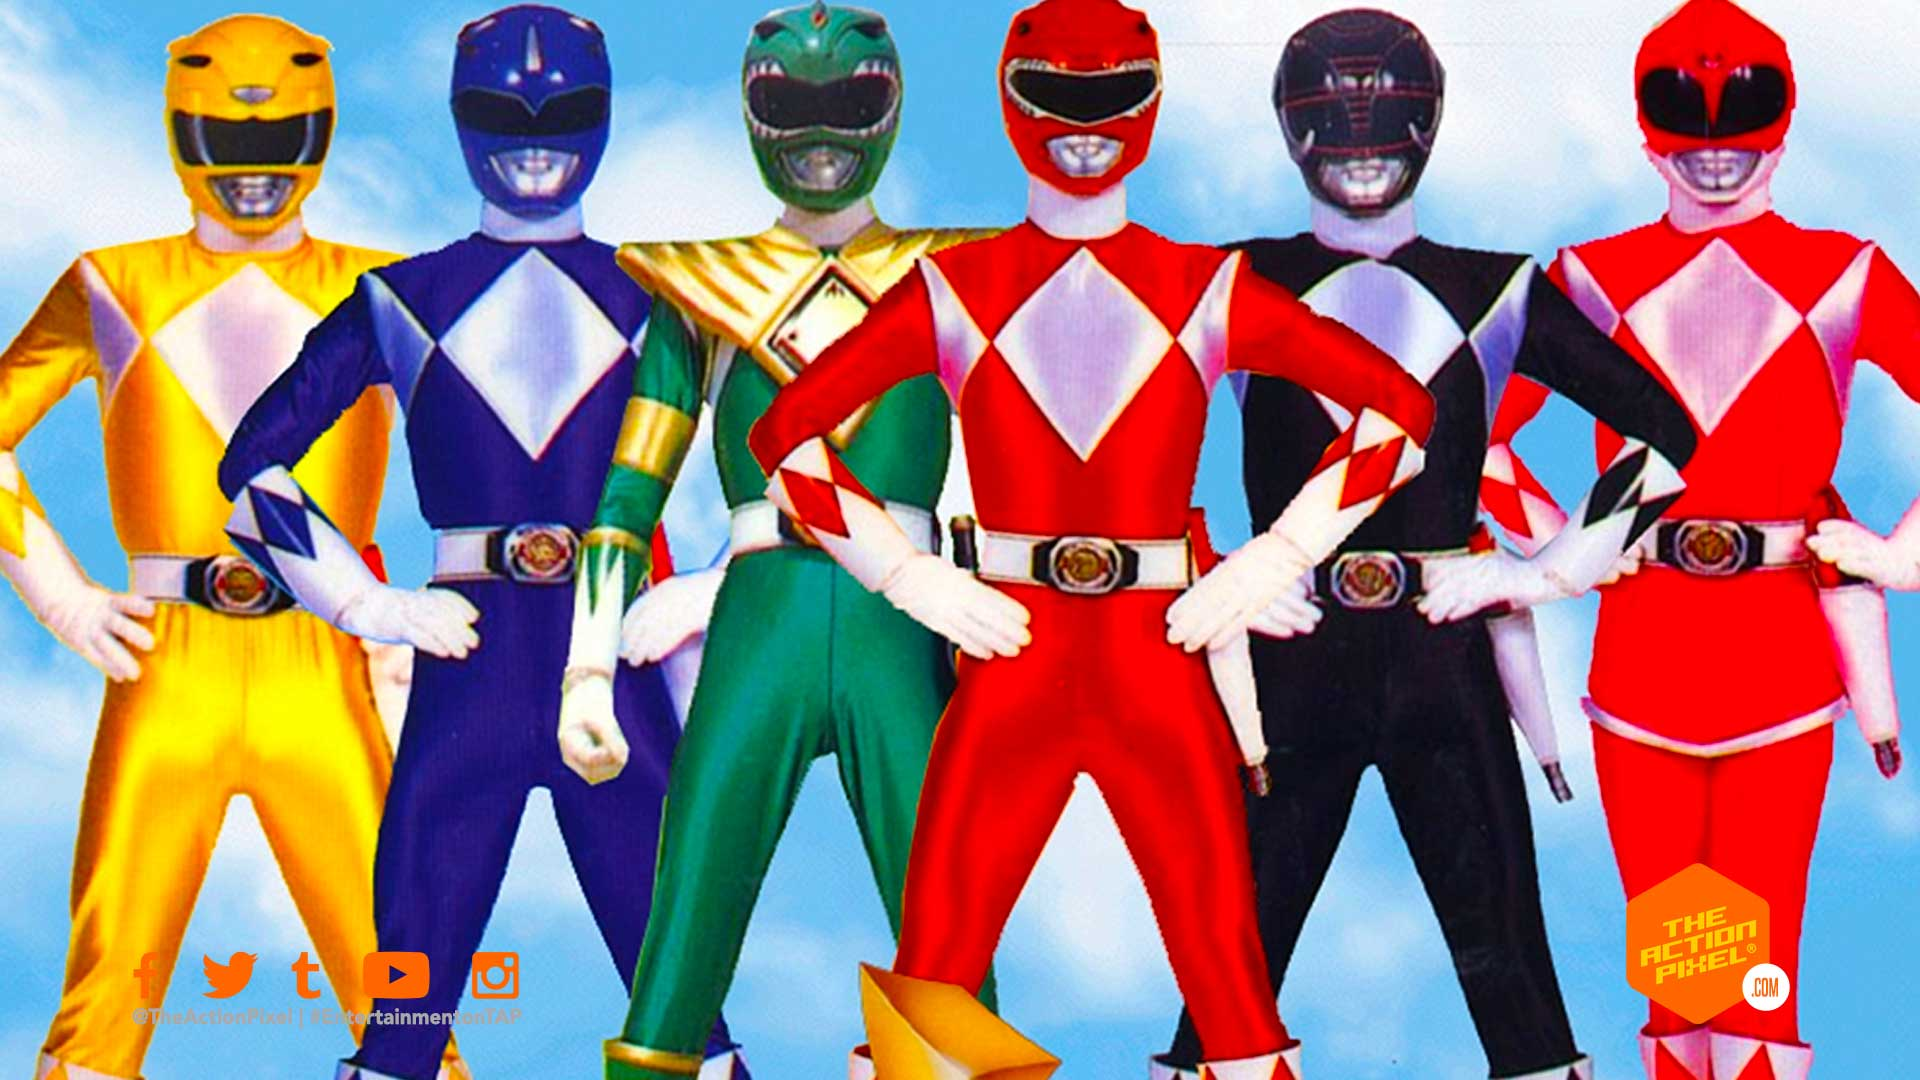 power rangers, saban, paramount pictures, the action pixel, the power rangers movie reboot, power rangers reboot, mighty morphin power rangers, entertainment on tap